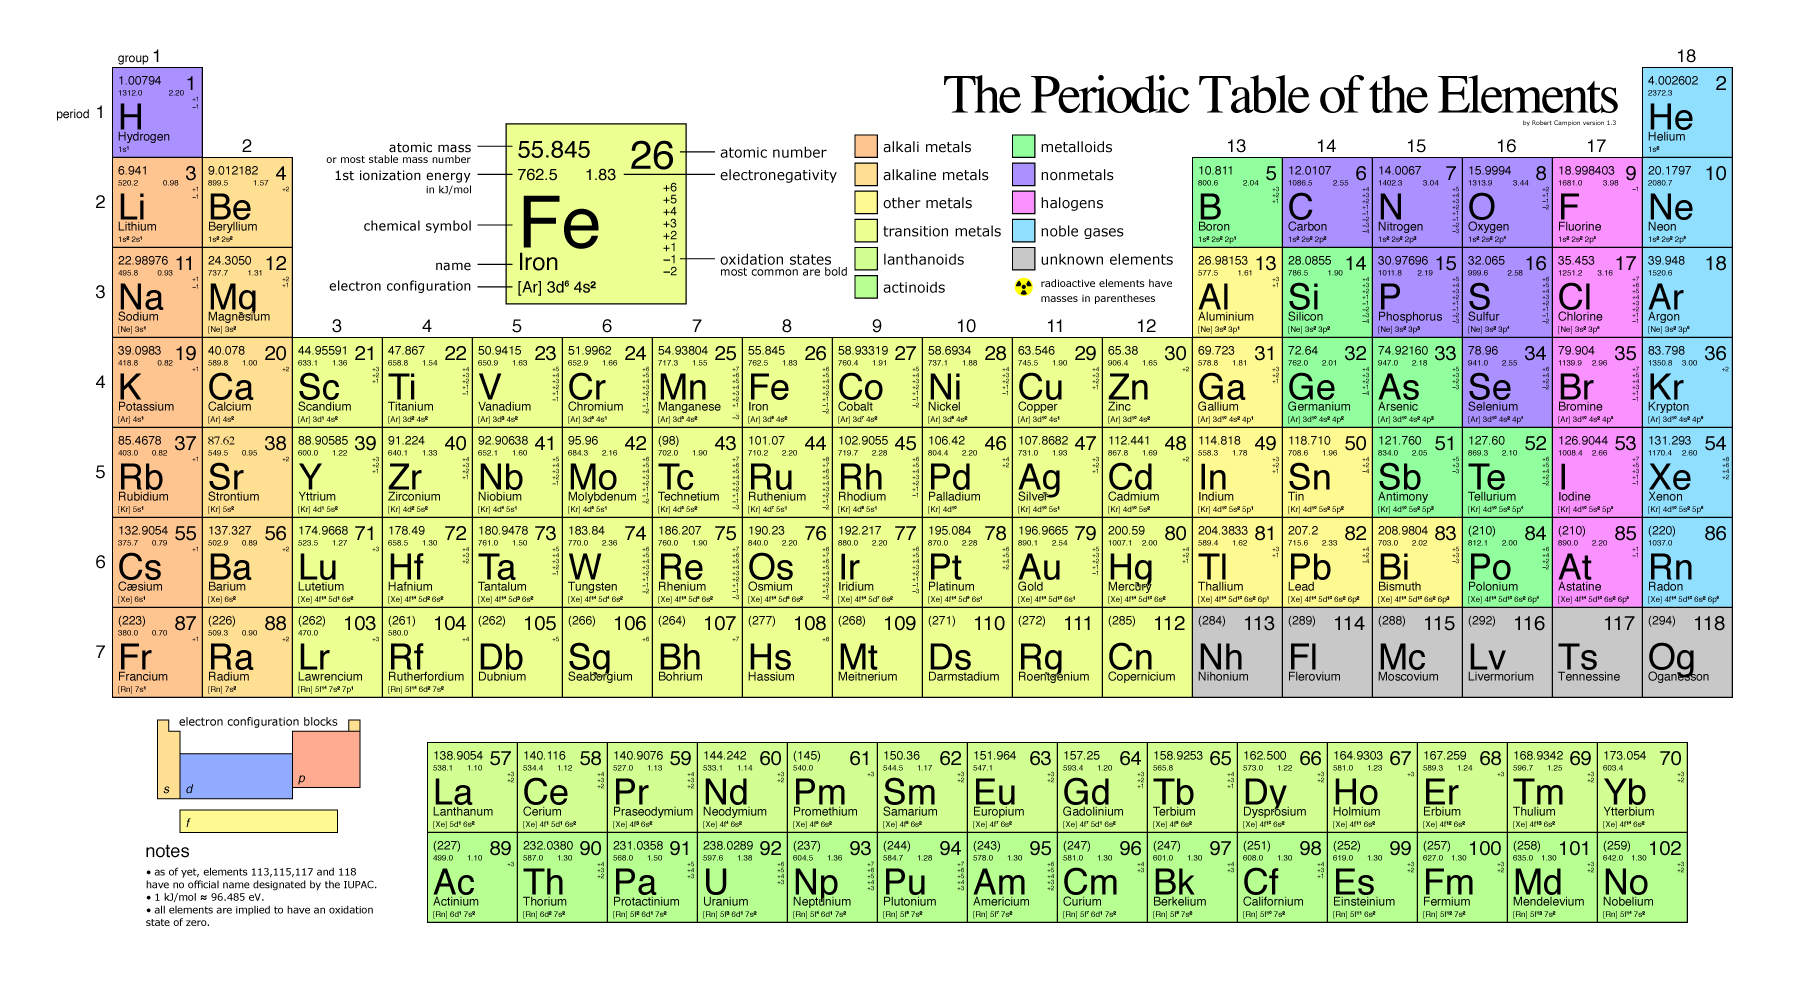 Actinide periodic table gallery periodic table images actinides on the periodic table images periodic table images where are the actinides located on the gamestrikefo Image collections